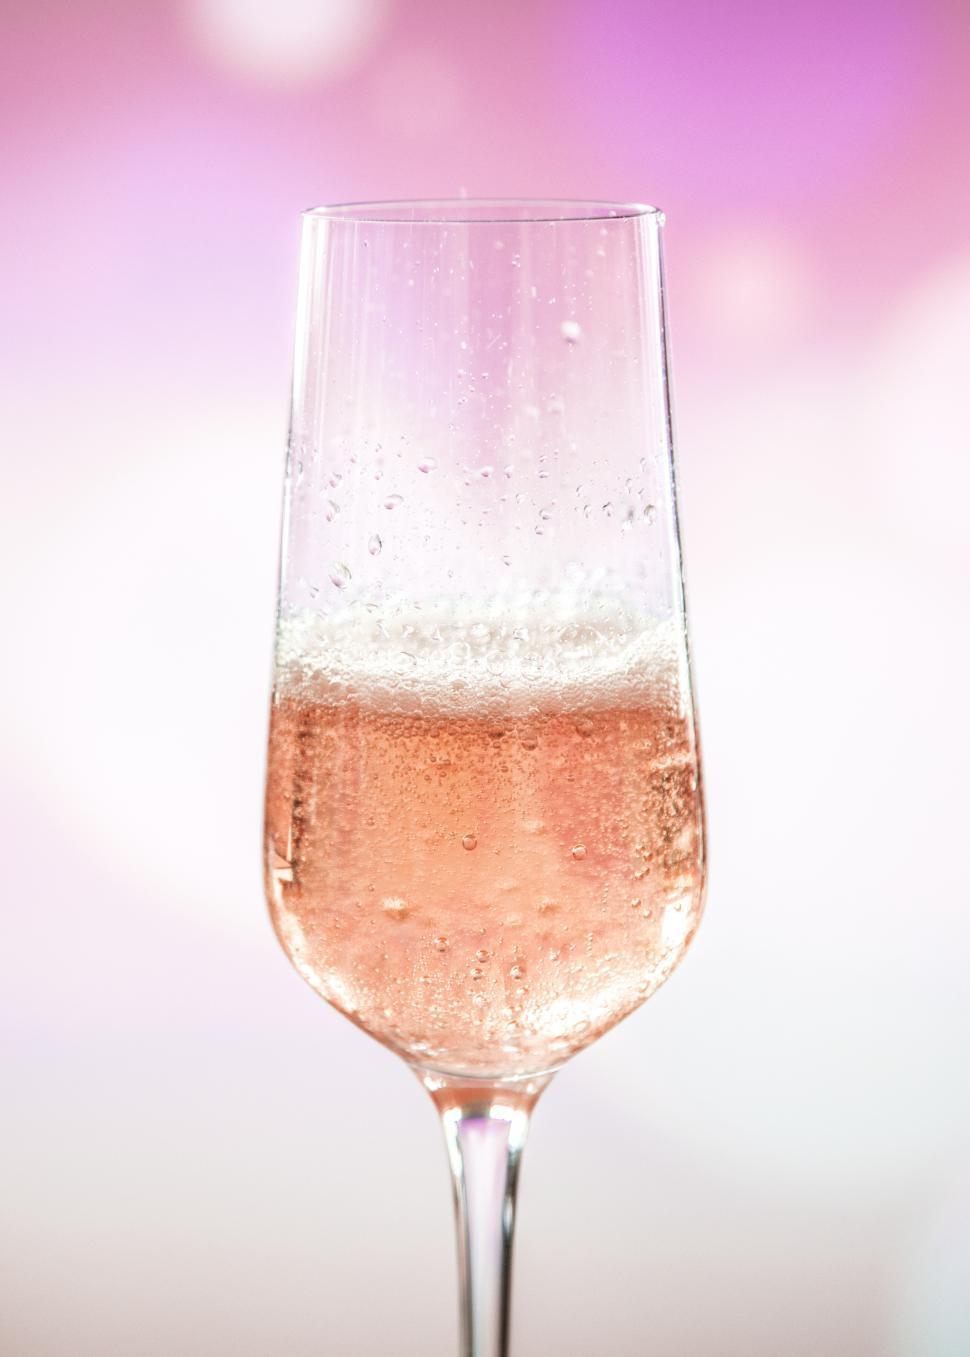 Download Free Stock HD Photo of Close up of a champagne glass with pink and white background Online